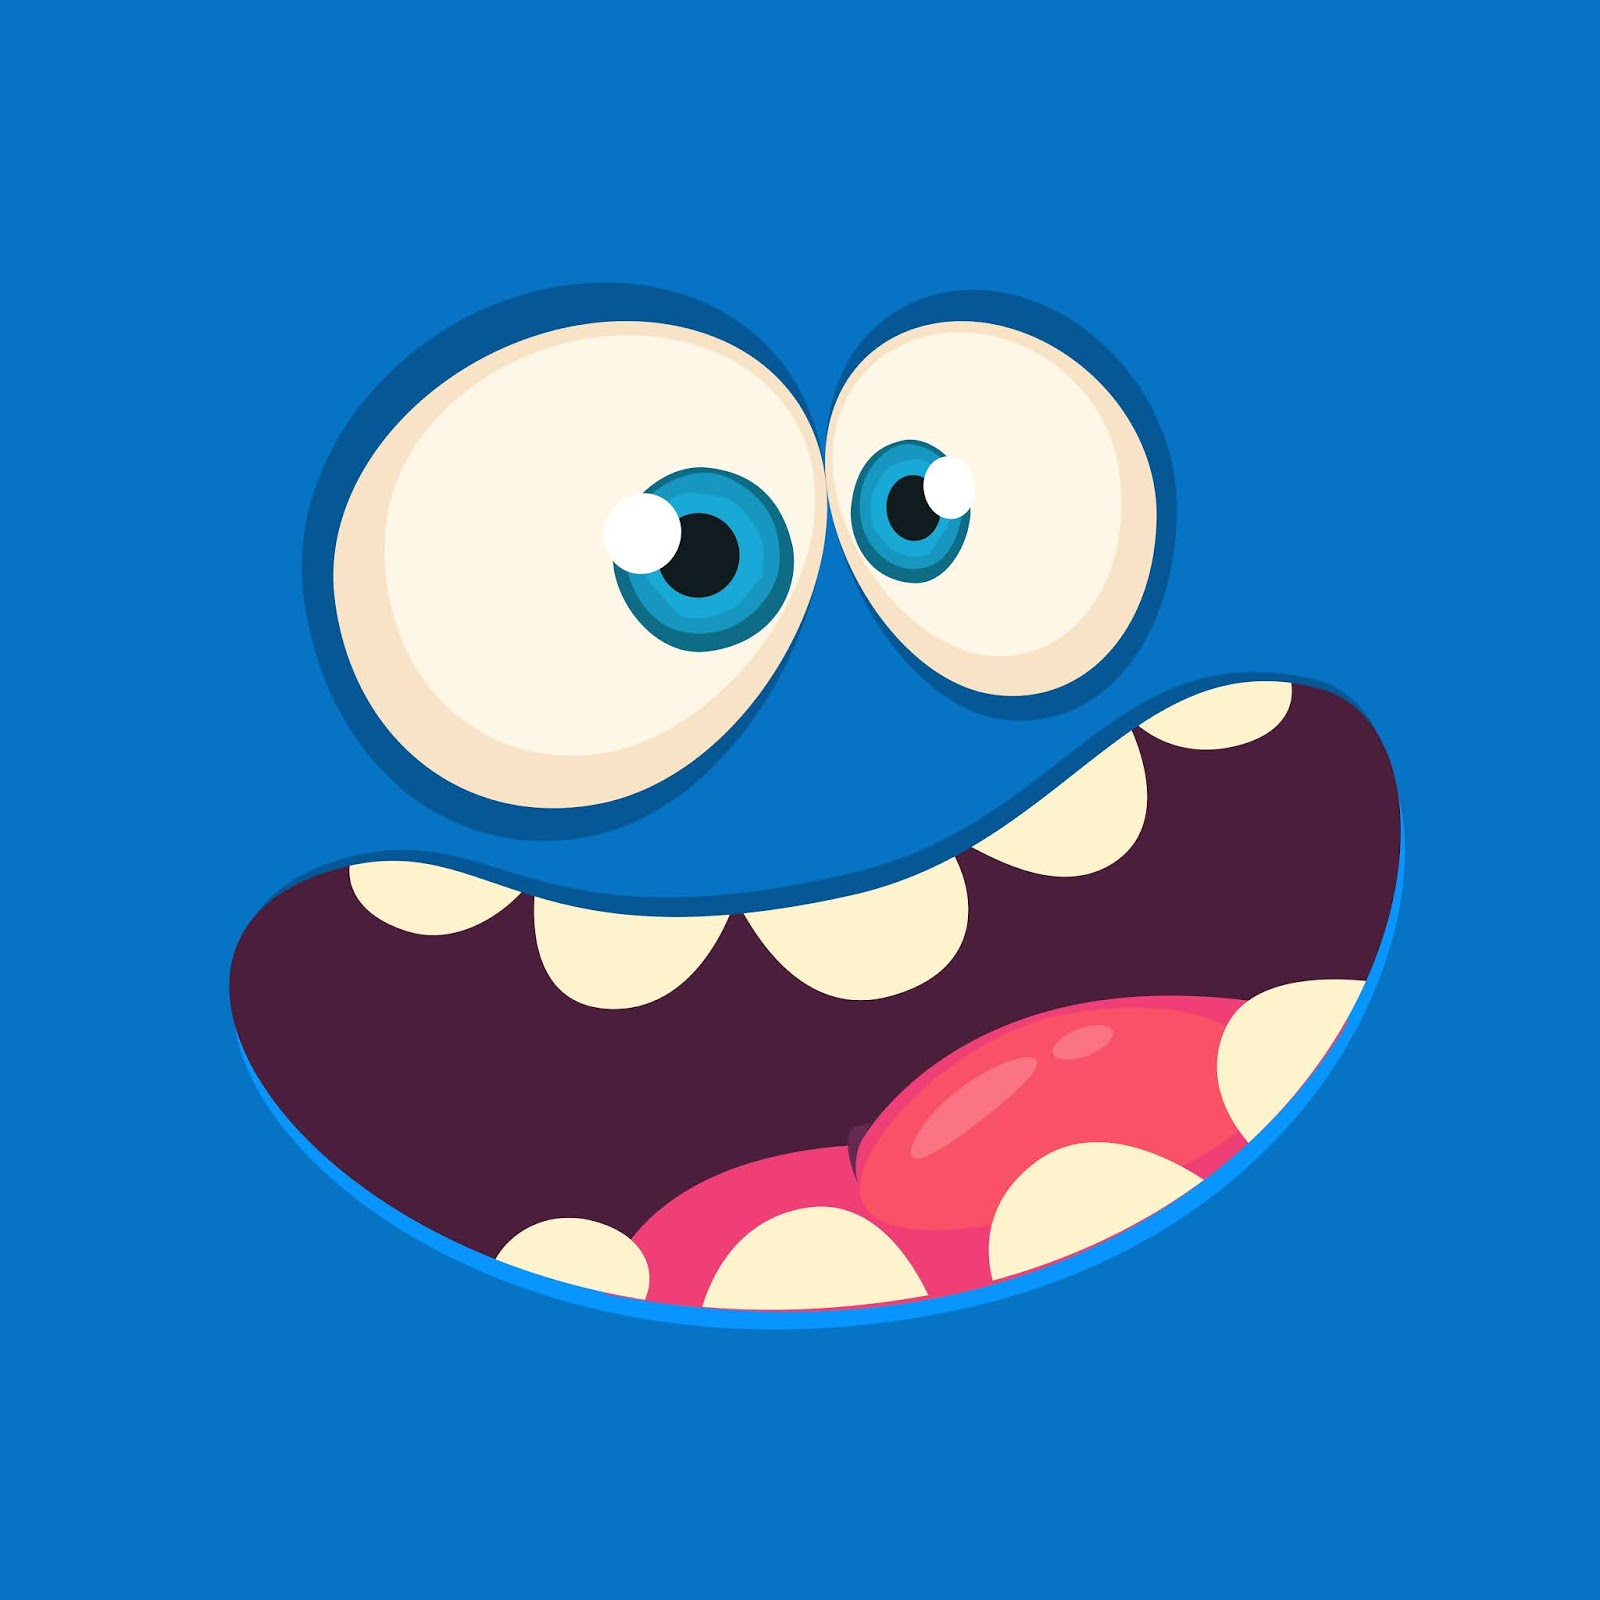 Cartoon Monster Face Avatar Halloween Free Download Vector CDR, AI, EPS and PNG Formats